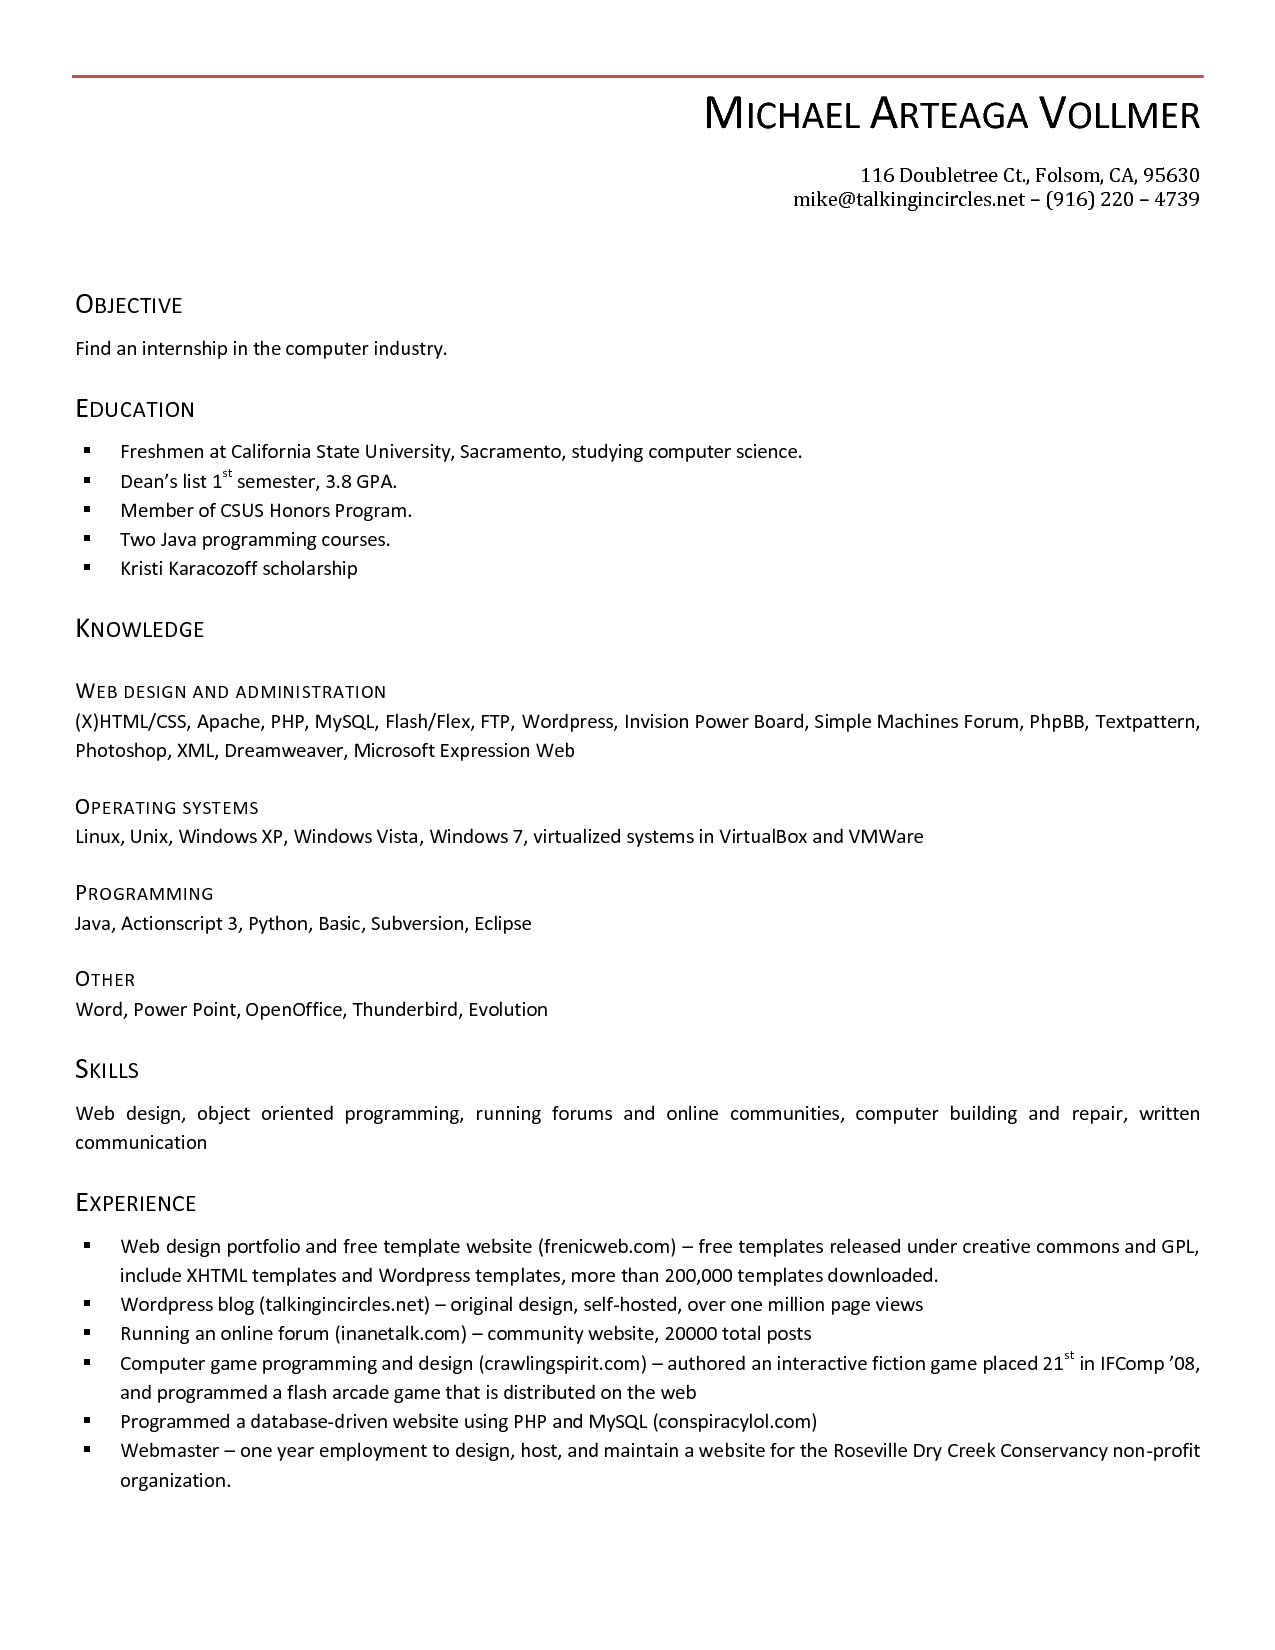 Resume templates for openoffice hdresume templates cover letter resume templates for openoffice hdresume templates cover letter examples madrichimfo Image collections